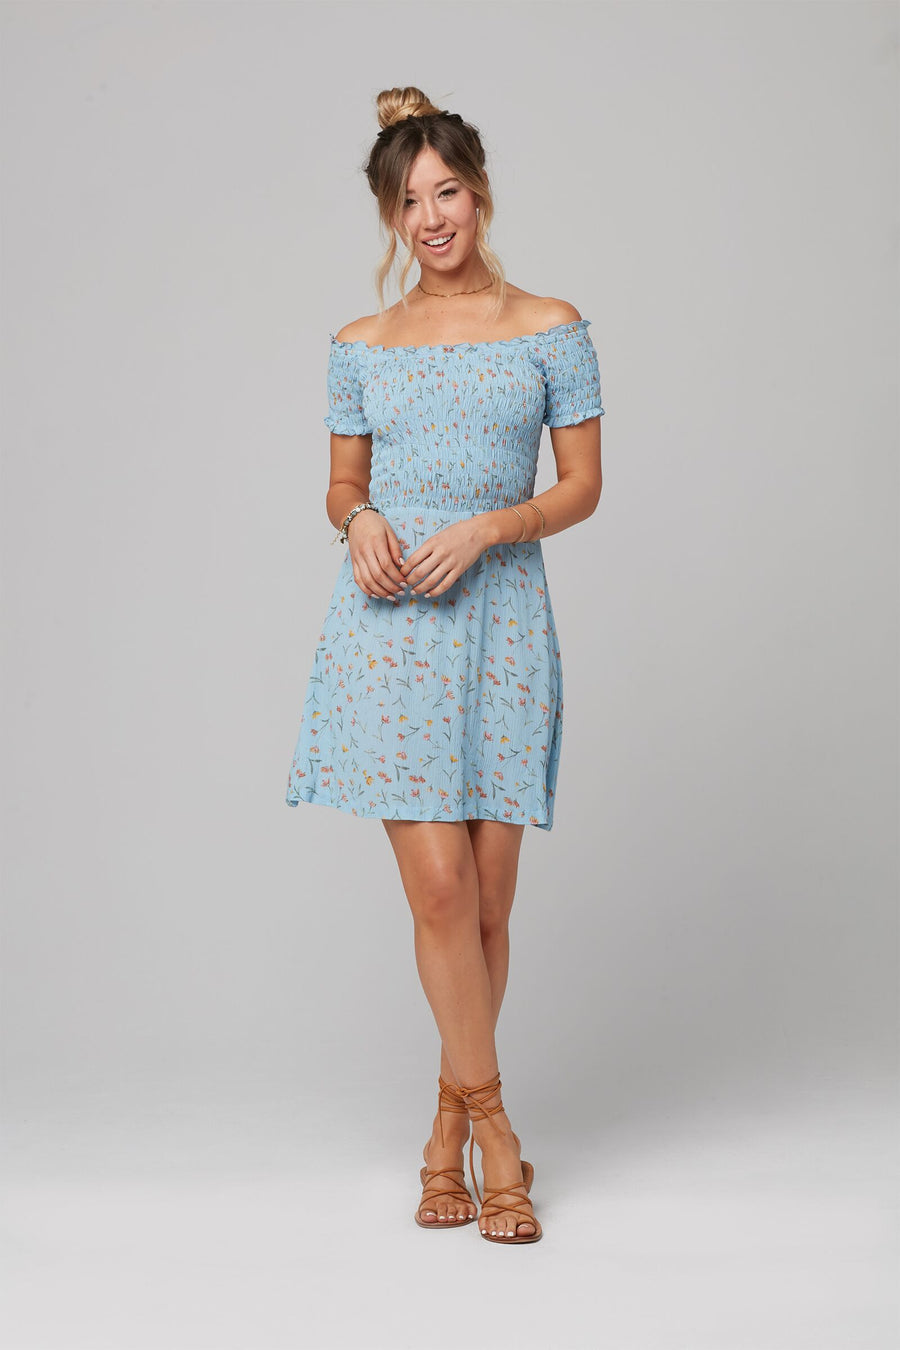 BLUEBELL DRESS - Knot Sisters